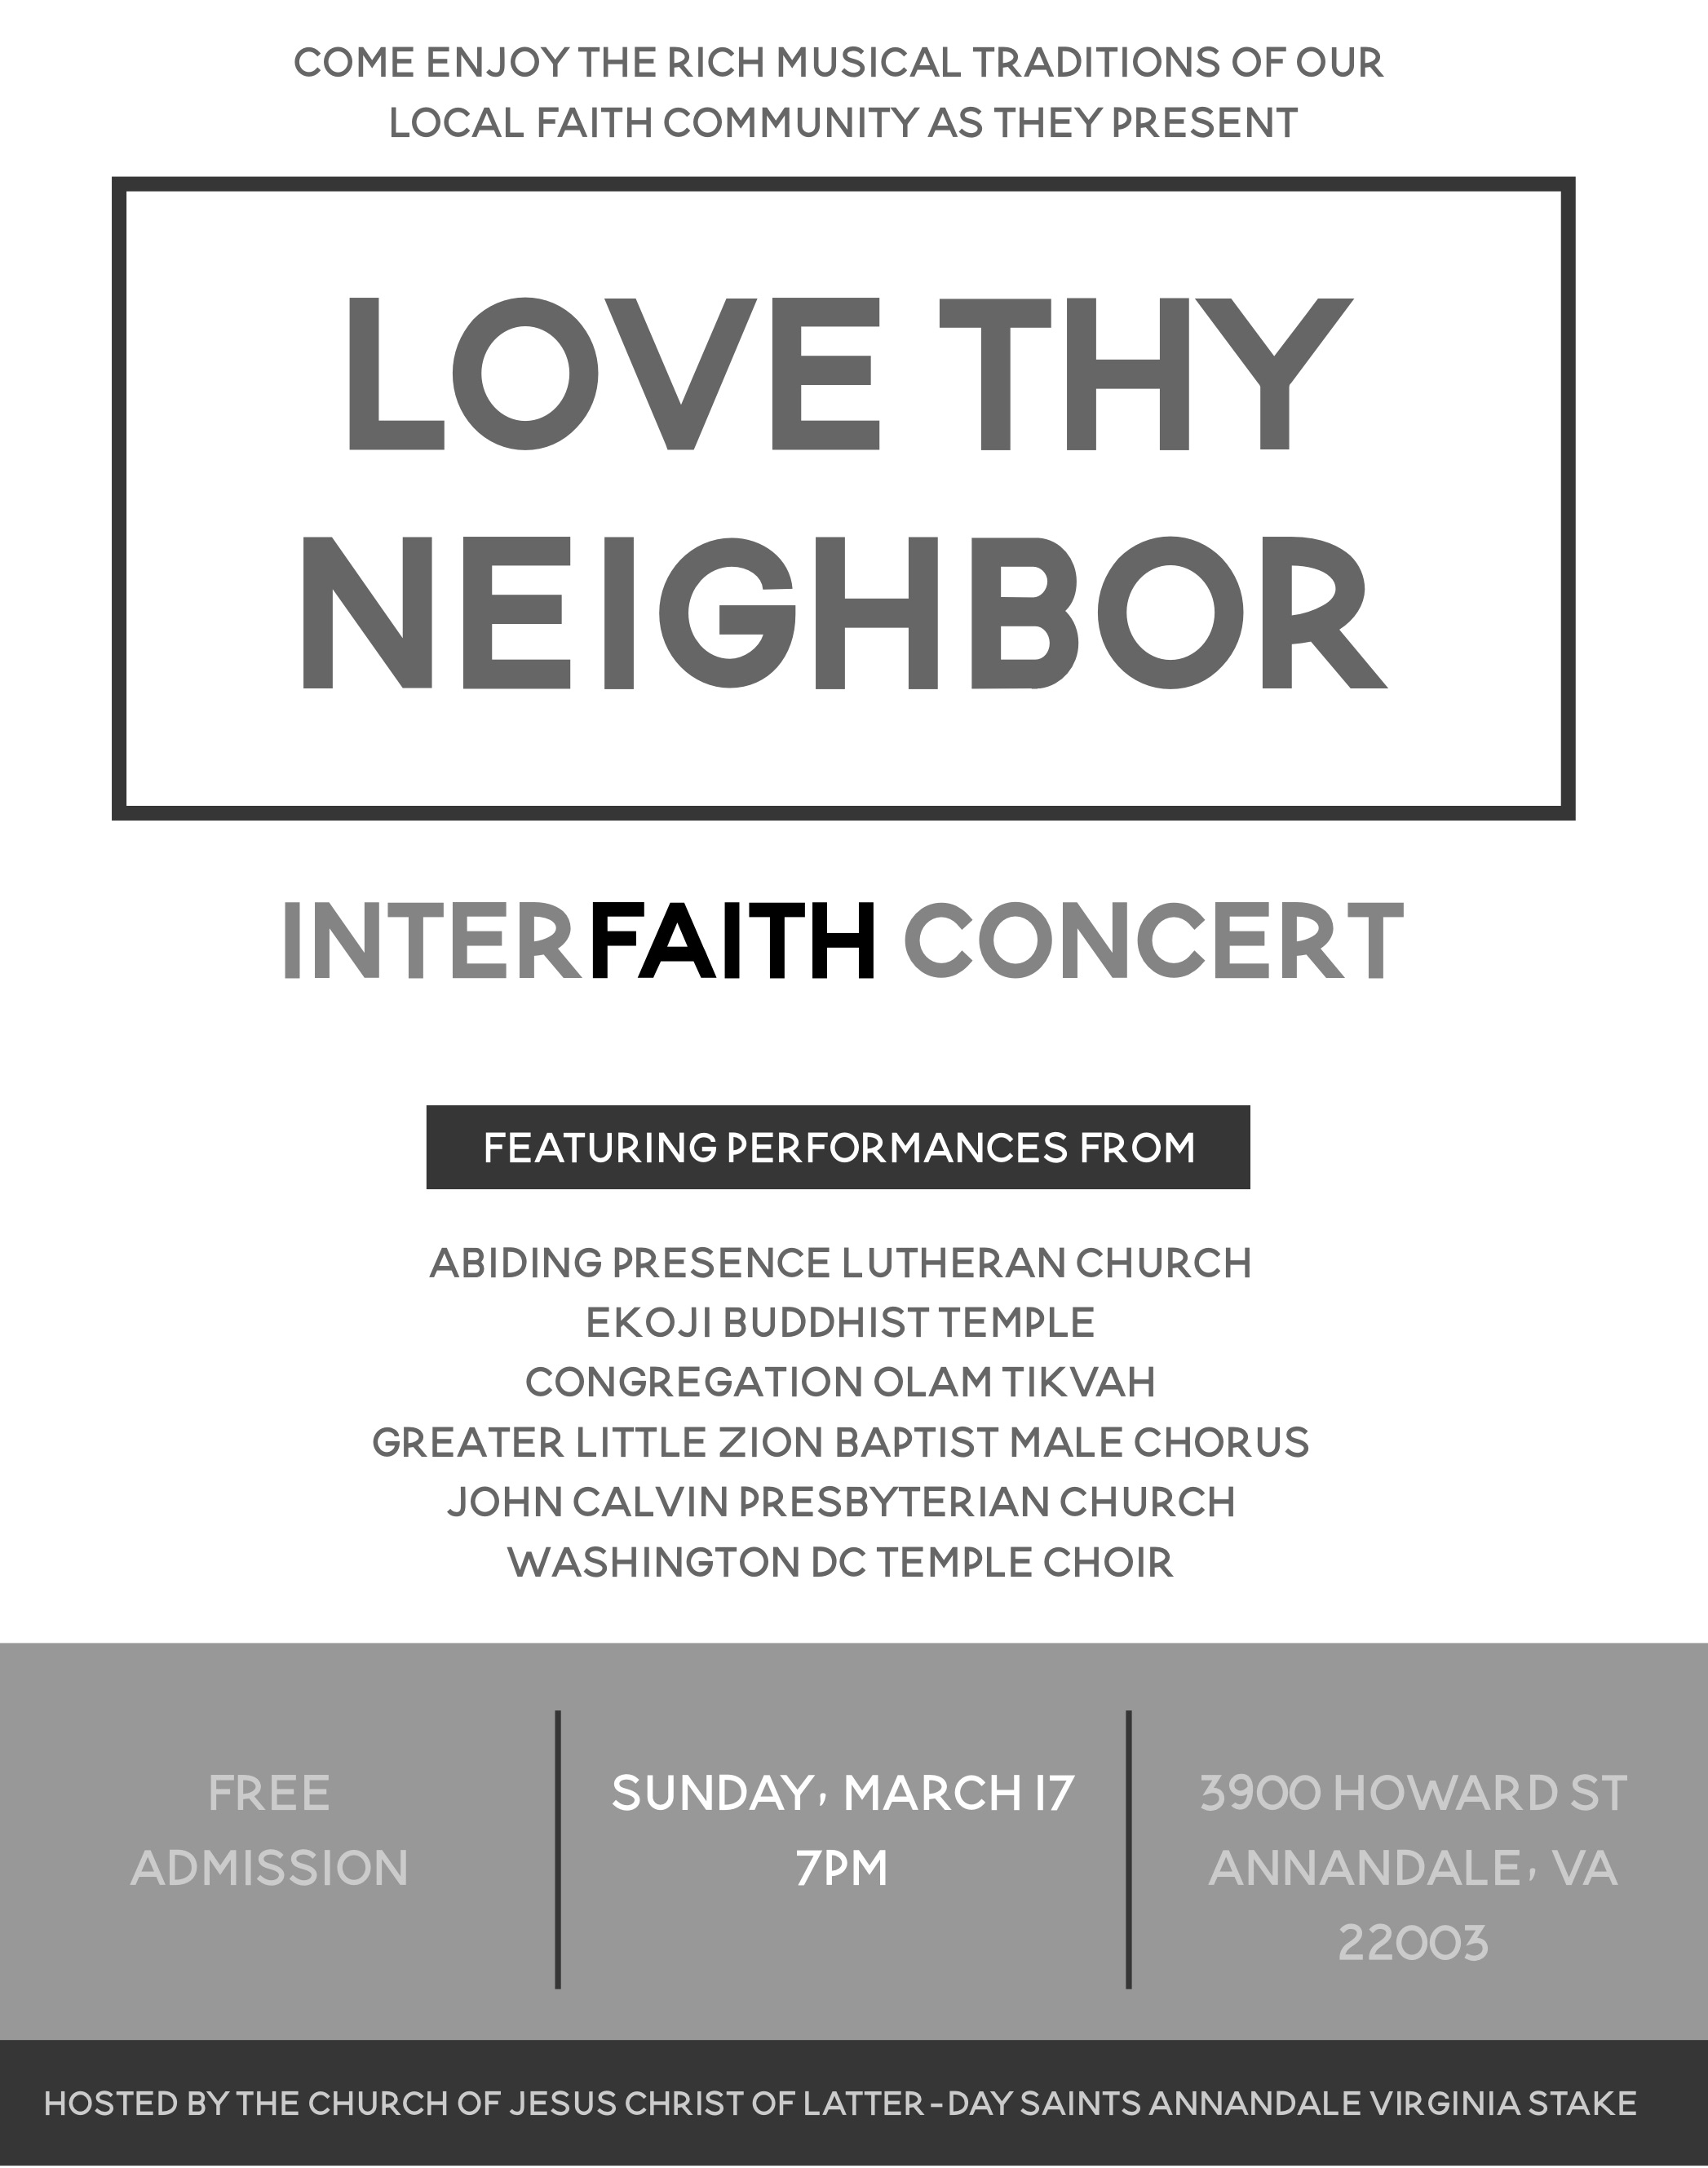 20190317_interfaith concert_quarter flyer_bw 1-up.jpg